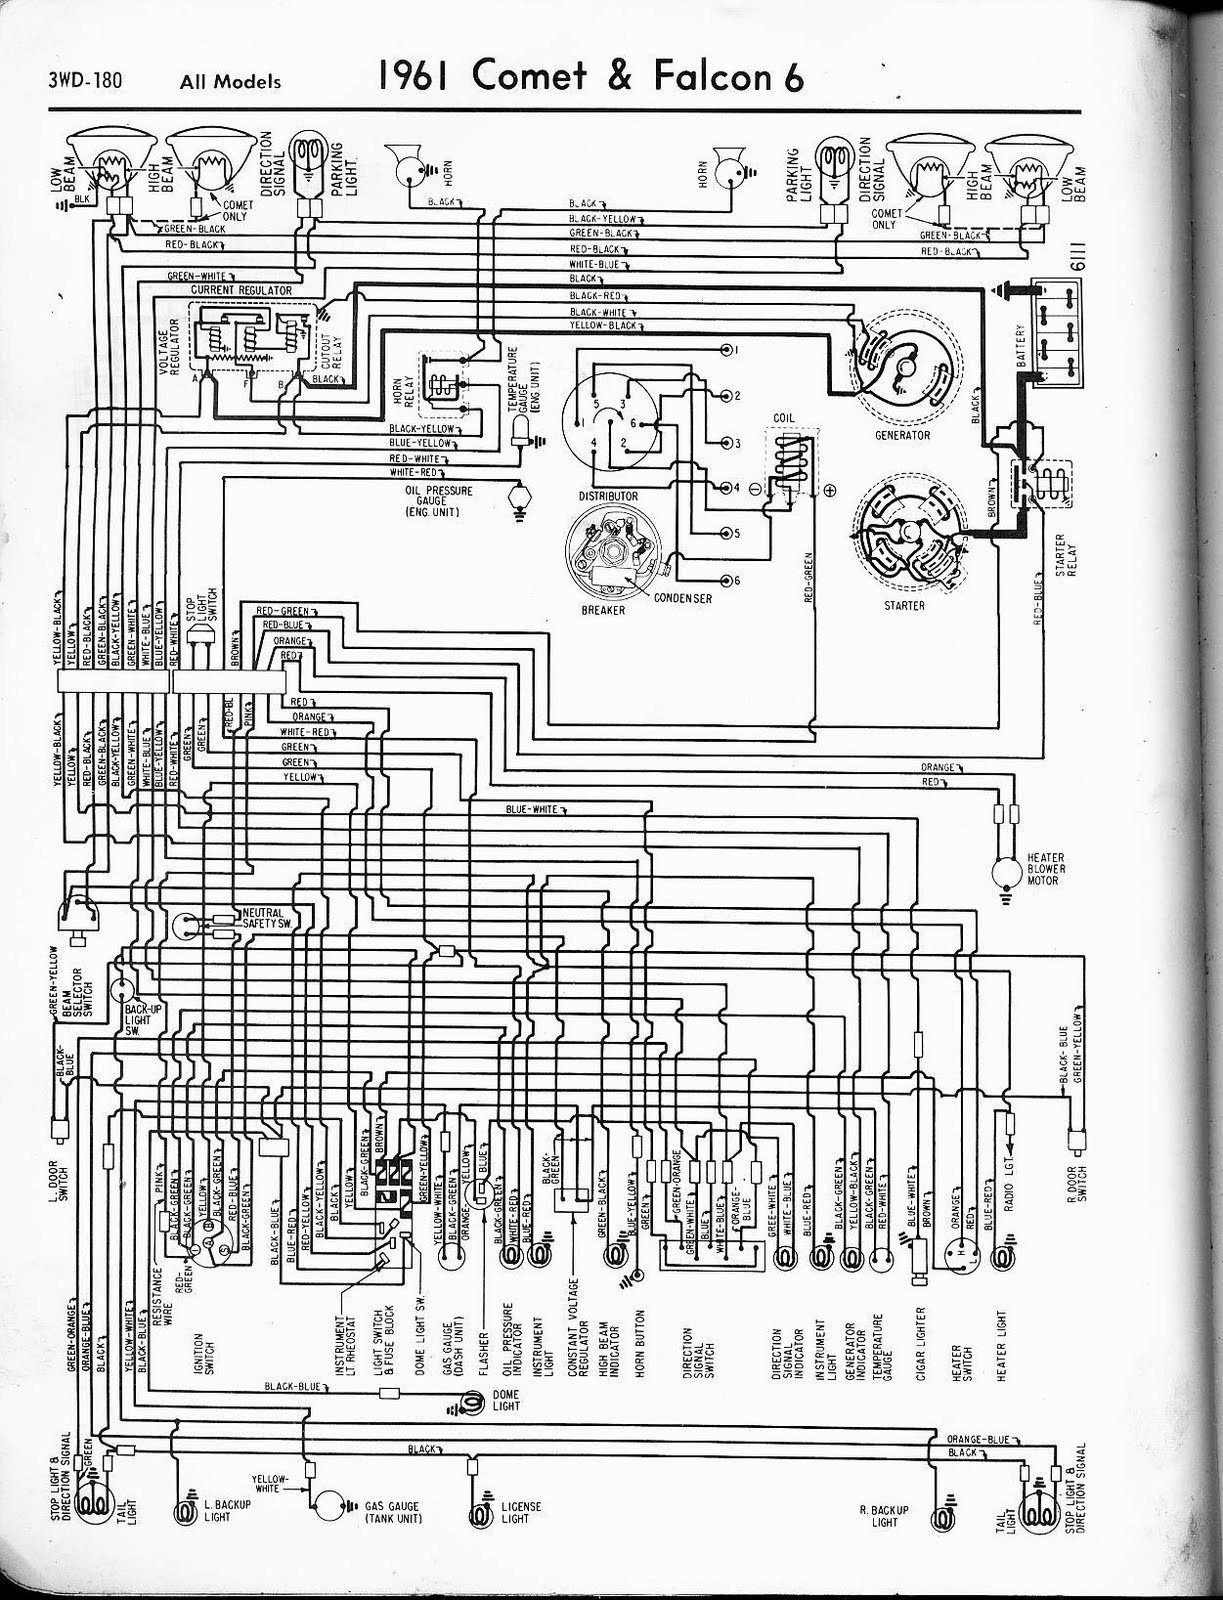 Ford Thunderbird Convertible further Wiper also Passenger Front also Thunderbird Vacuum Rear Vents Diagram together with Bford Bfalcon B et Bwiring Bdiagram. on 1955 ford thunderbird wiring diagram